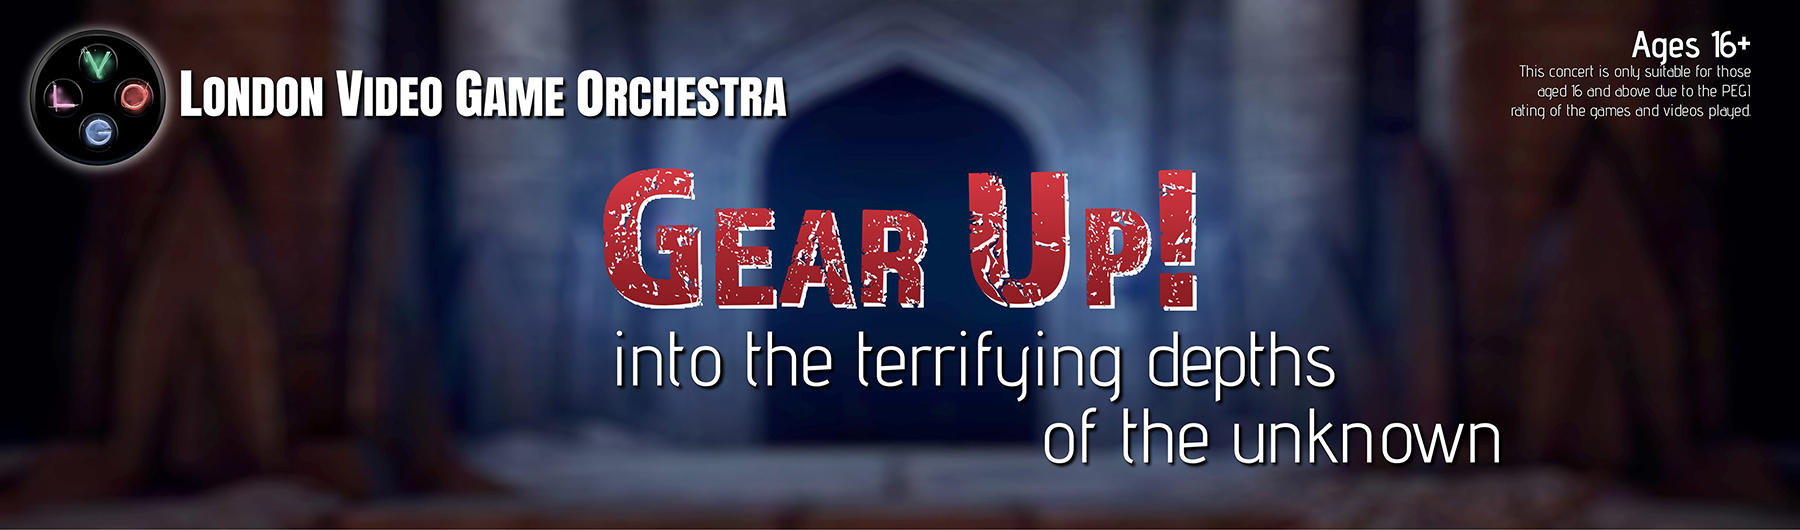 LVGO October Concert  - Gear Up! Into the terrifying depths of the unknown - 19 October, 7pm